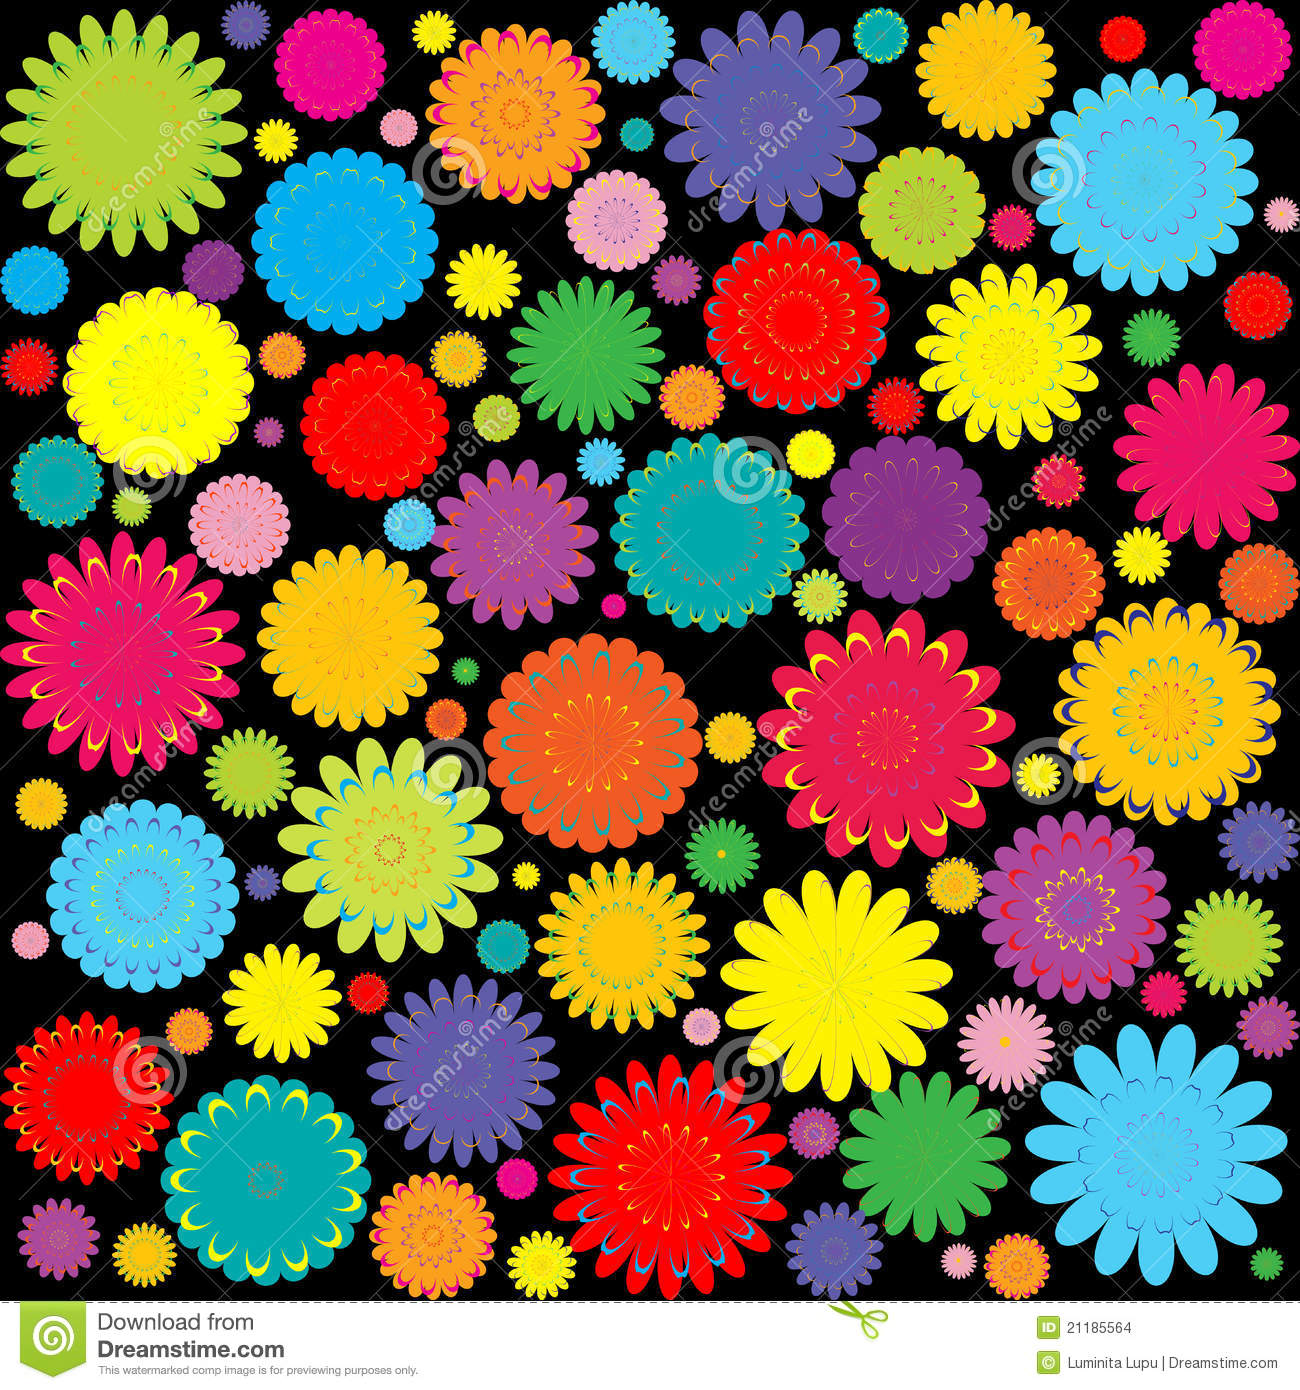 Abstract background with colored flowers